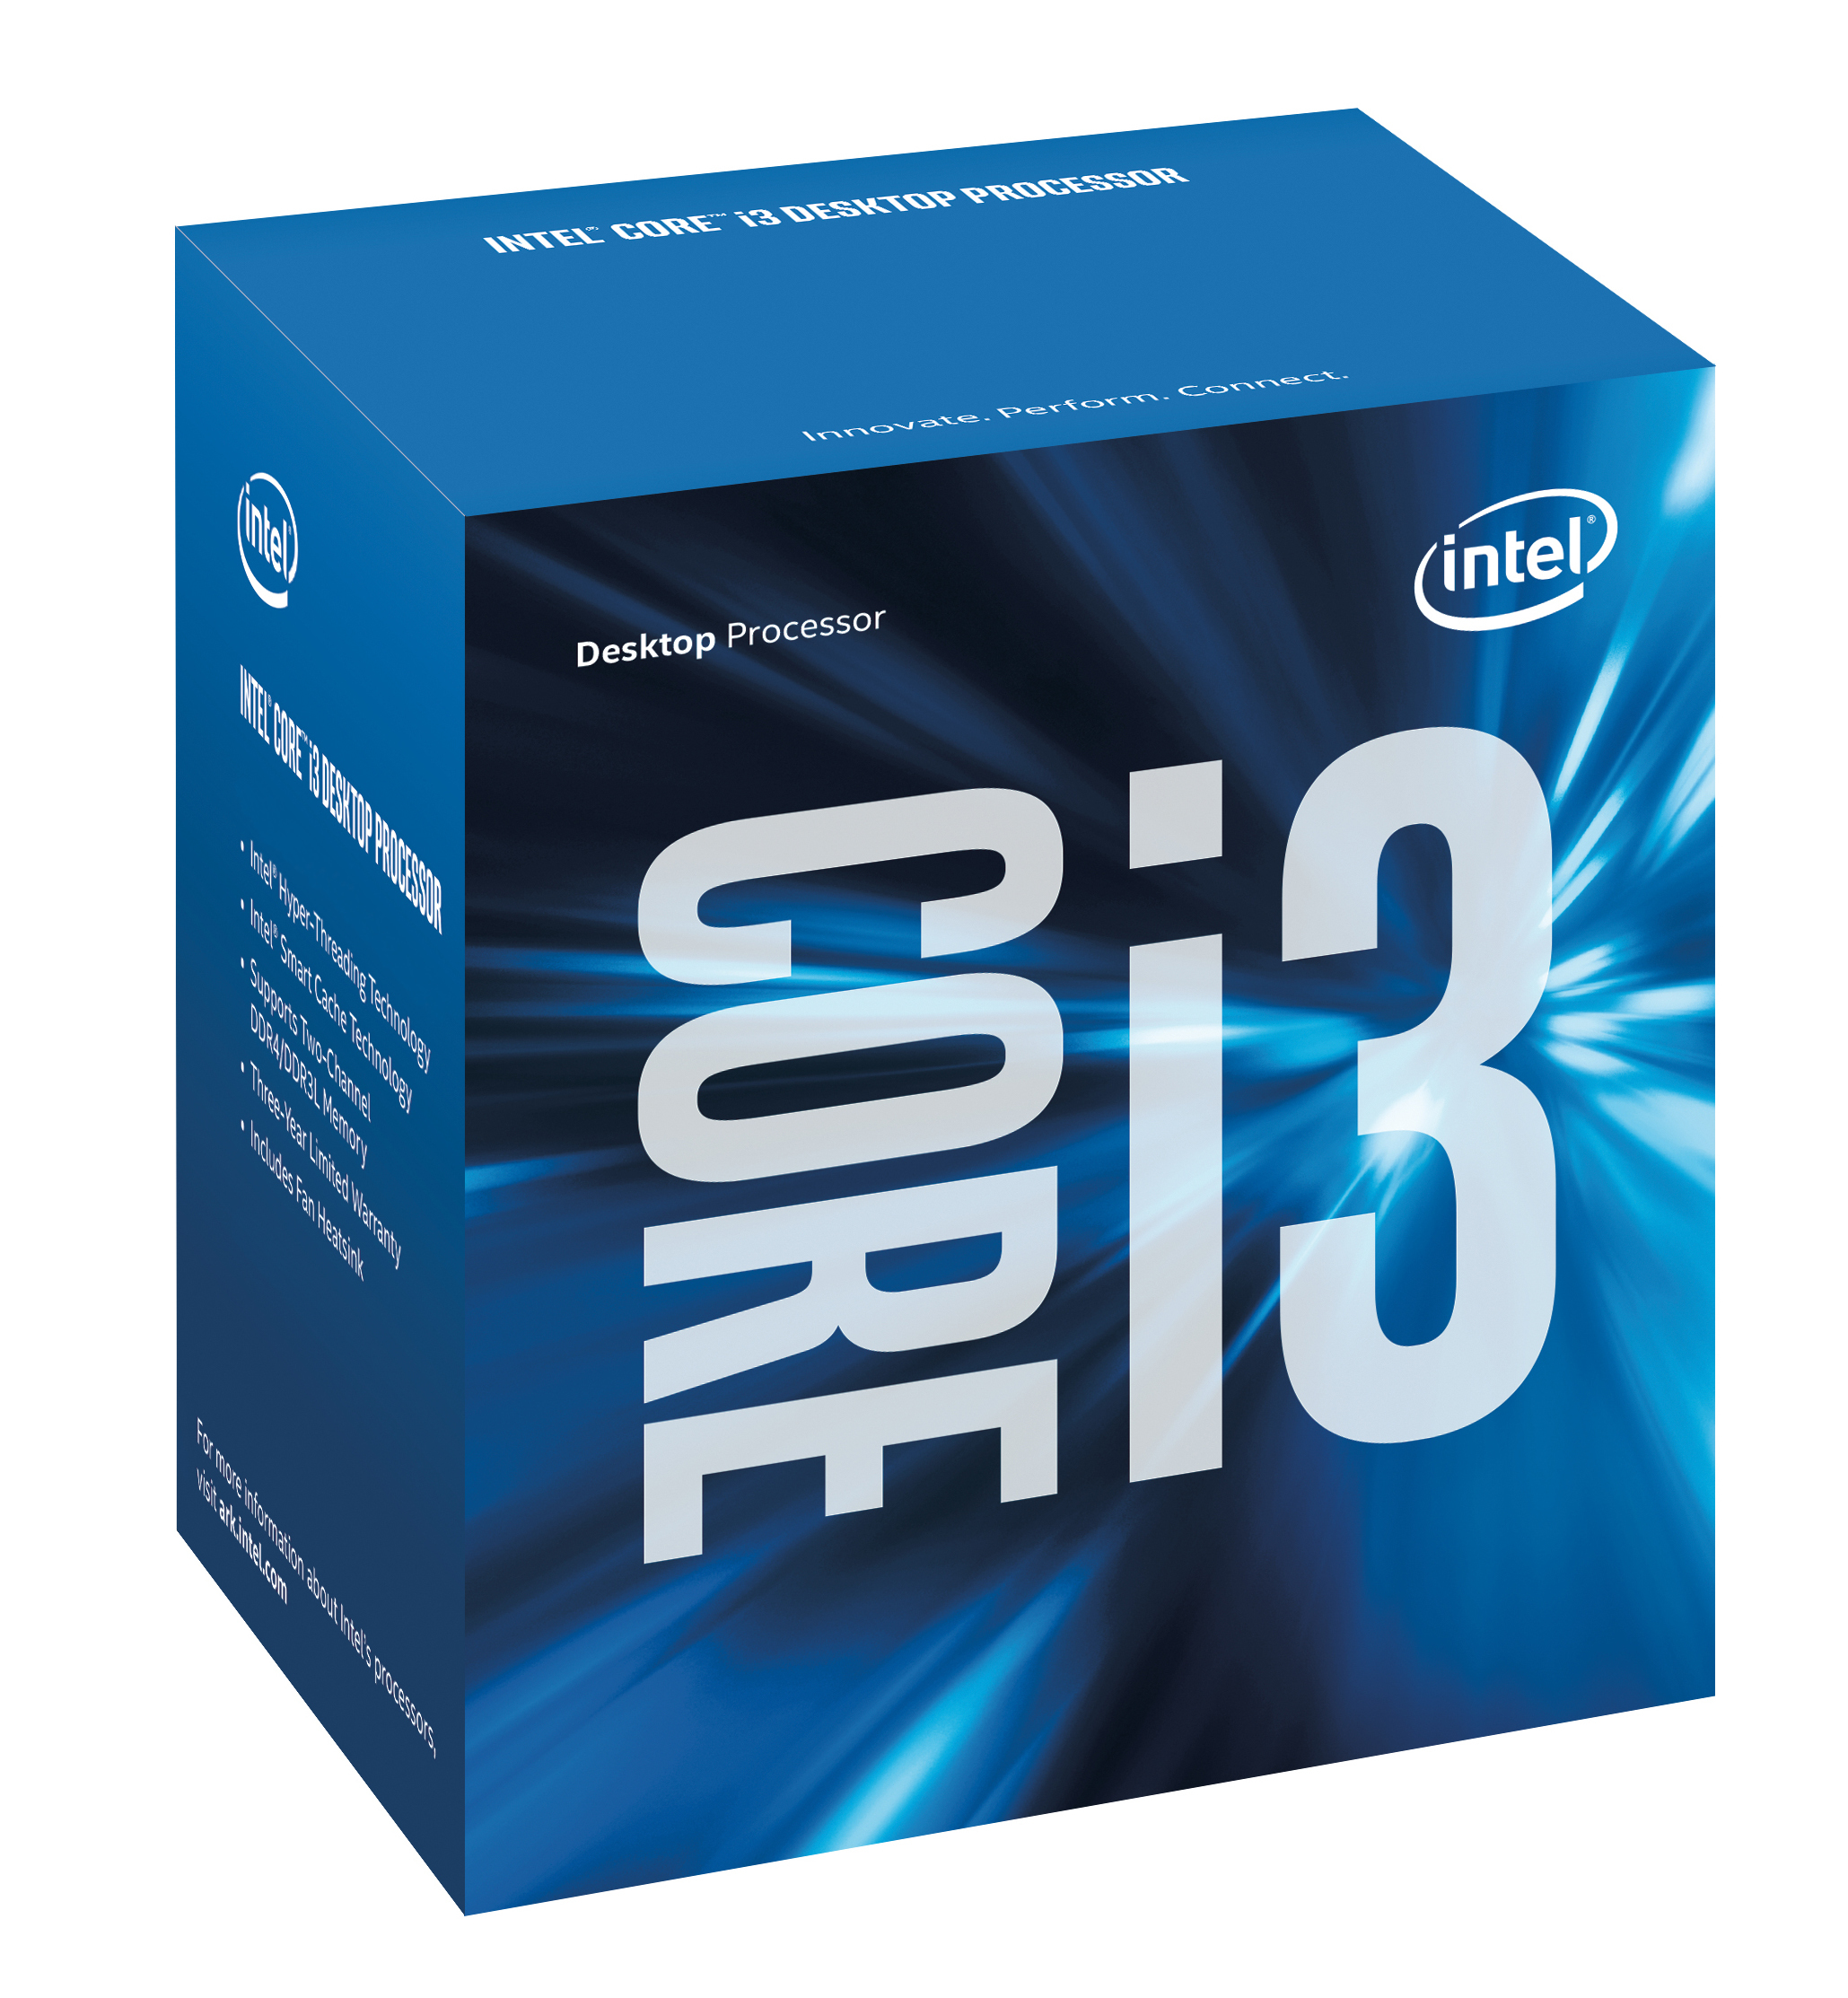 Intel Core ® ™ i3-7100 Processor (3M Cache, 3.90 GHz) 3.9GHz 3MB Smart Cache Box processor